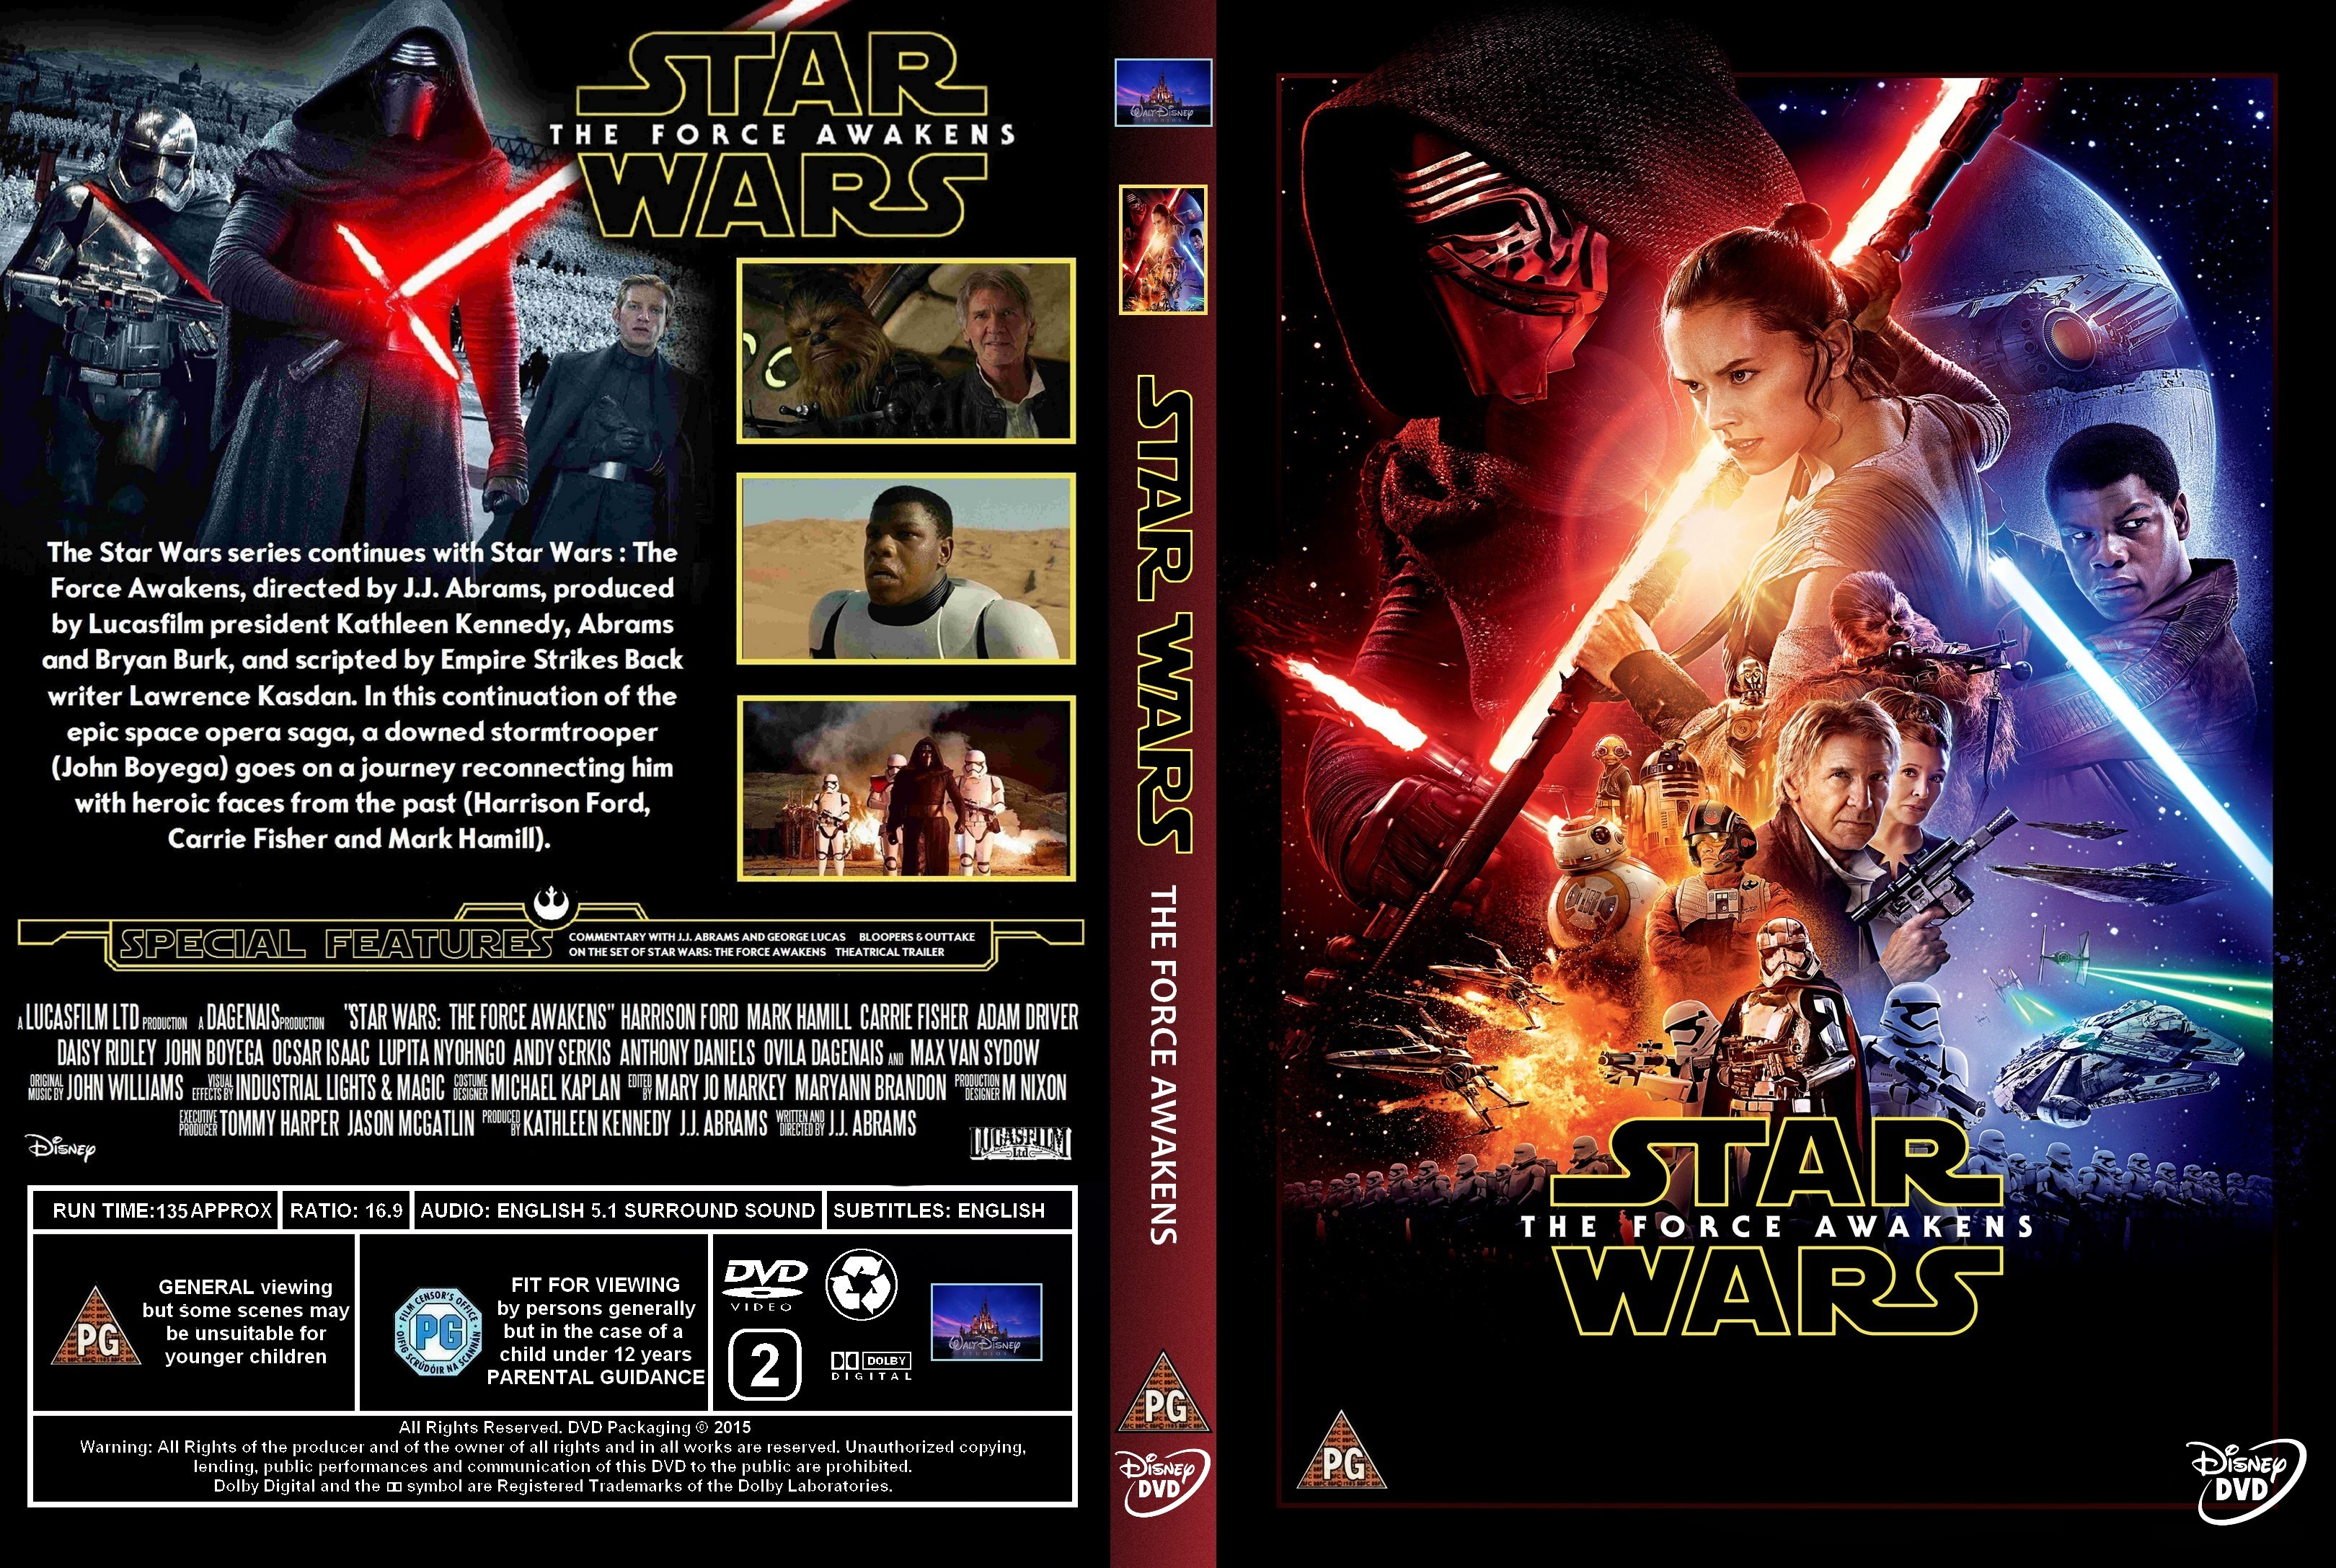 Star Wars: Episode VII The Force Awakens (2015)